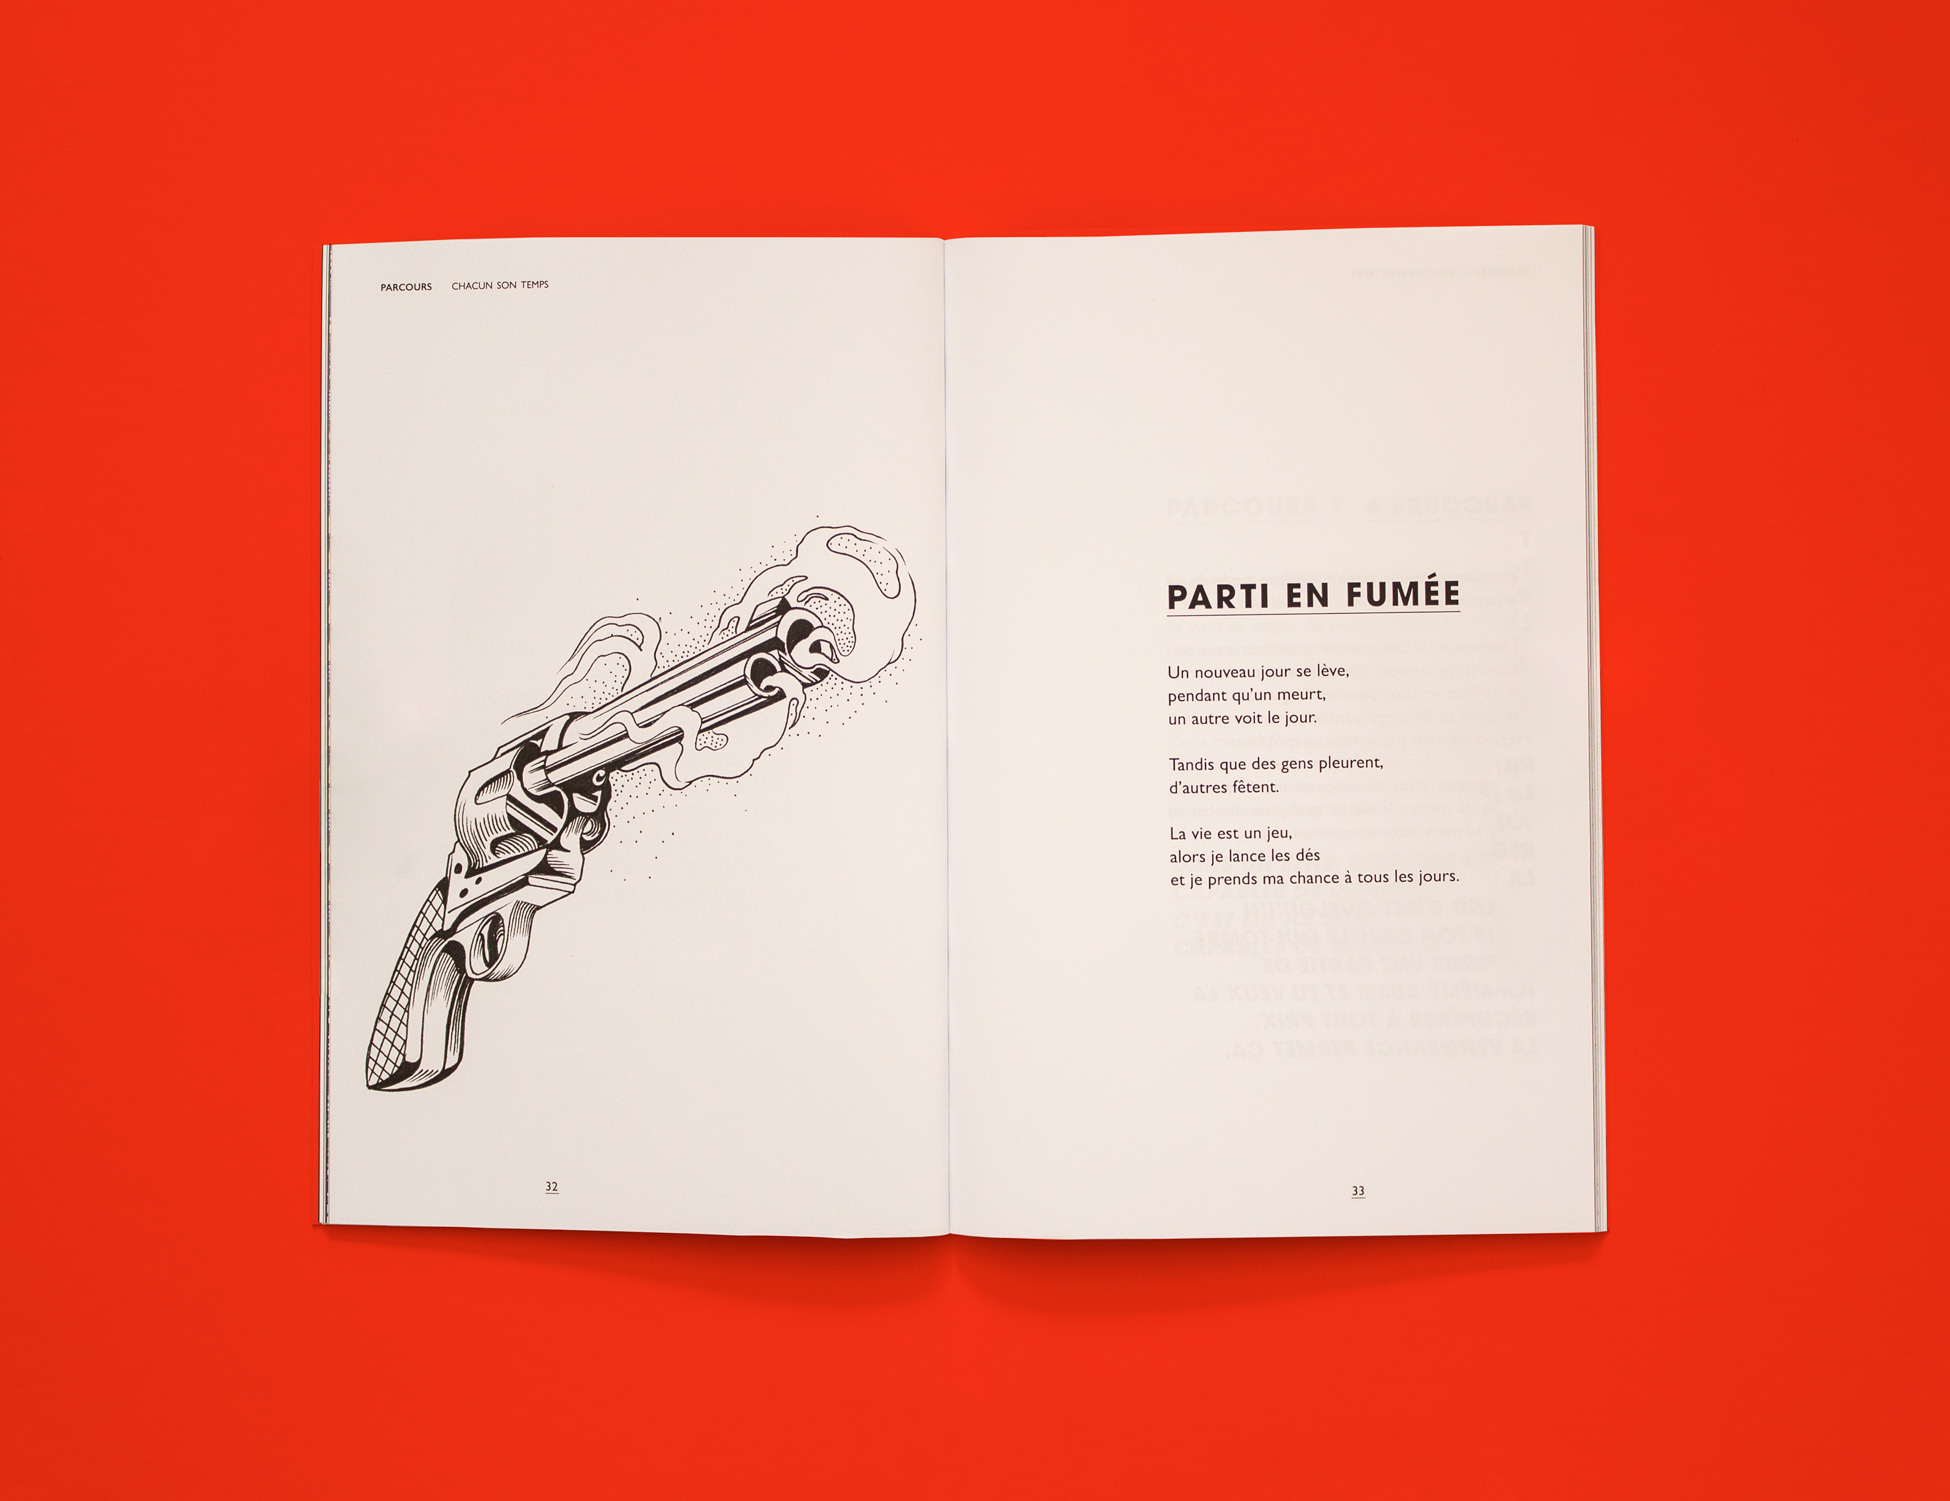 """Spread from Parcous: Chacun son temps. The left page shows an ink illustration of a recently fired gun, with smoke coming out of the muzzle. The right page is a short poem titled """"Parti en fumée."""""""